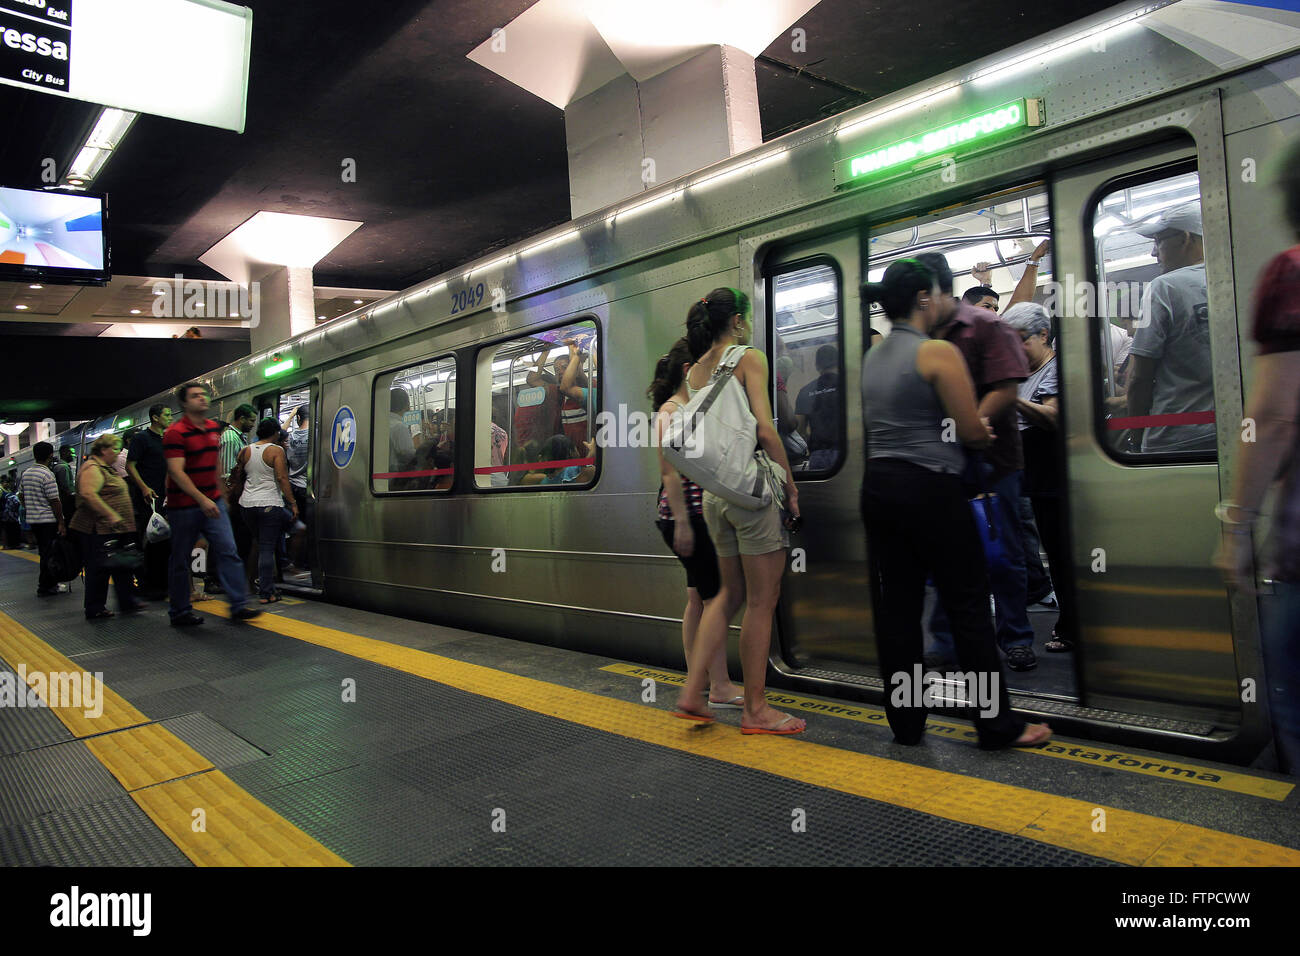 Embarkation and disembarkation of passengers in railway Largo do Machado metro in Cattete - Stock Image